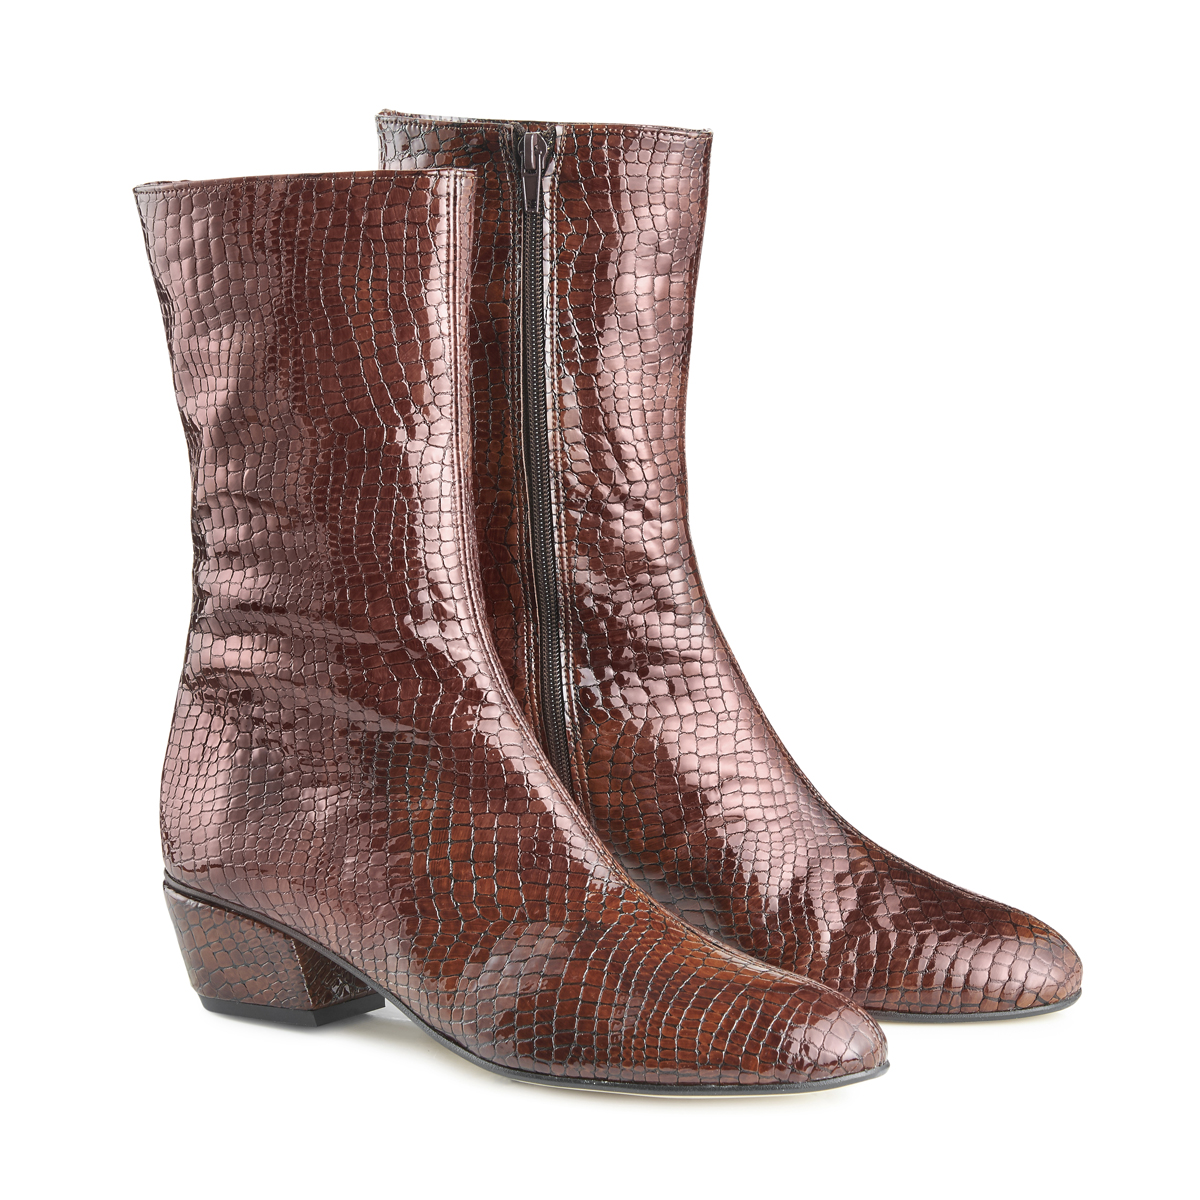 Belle Ankle Boots - Brown Croc